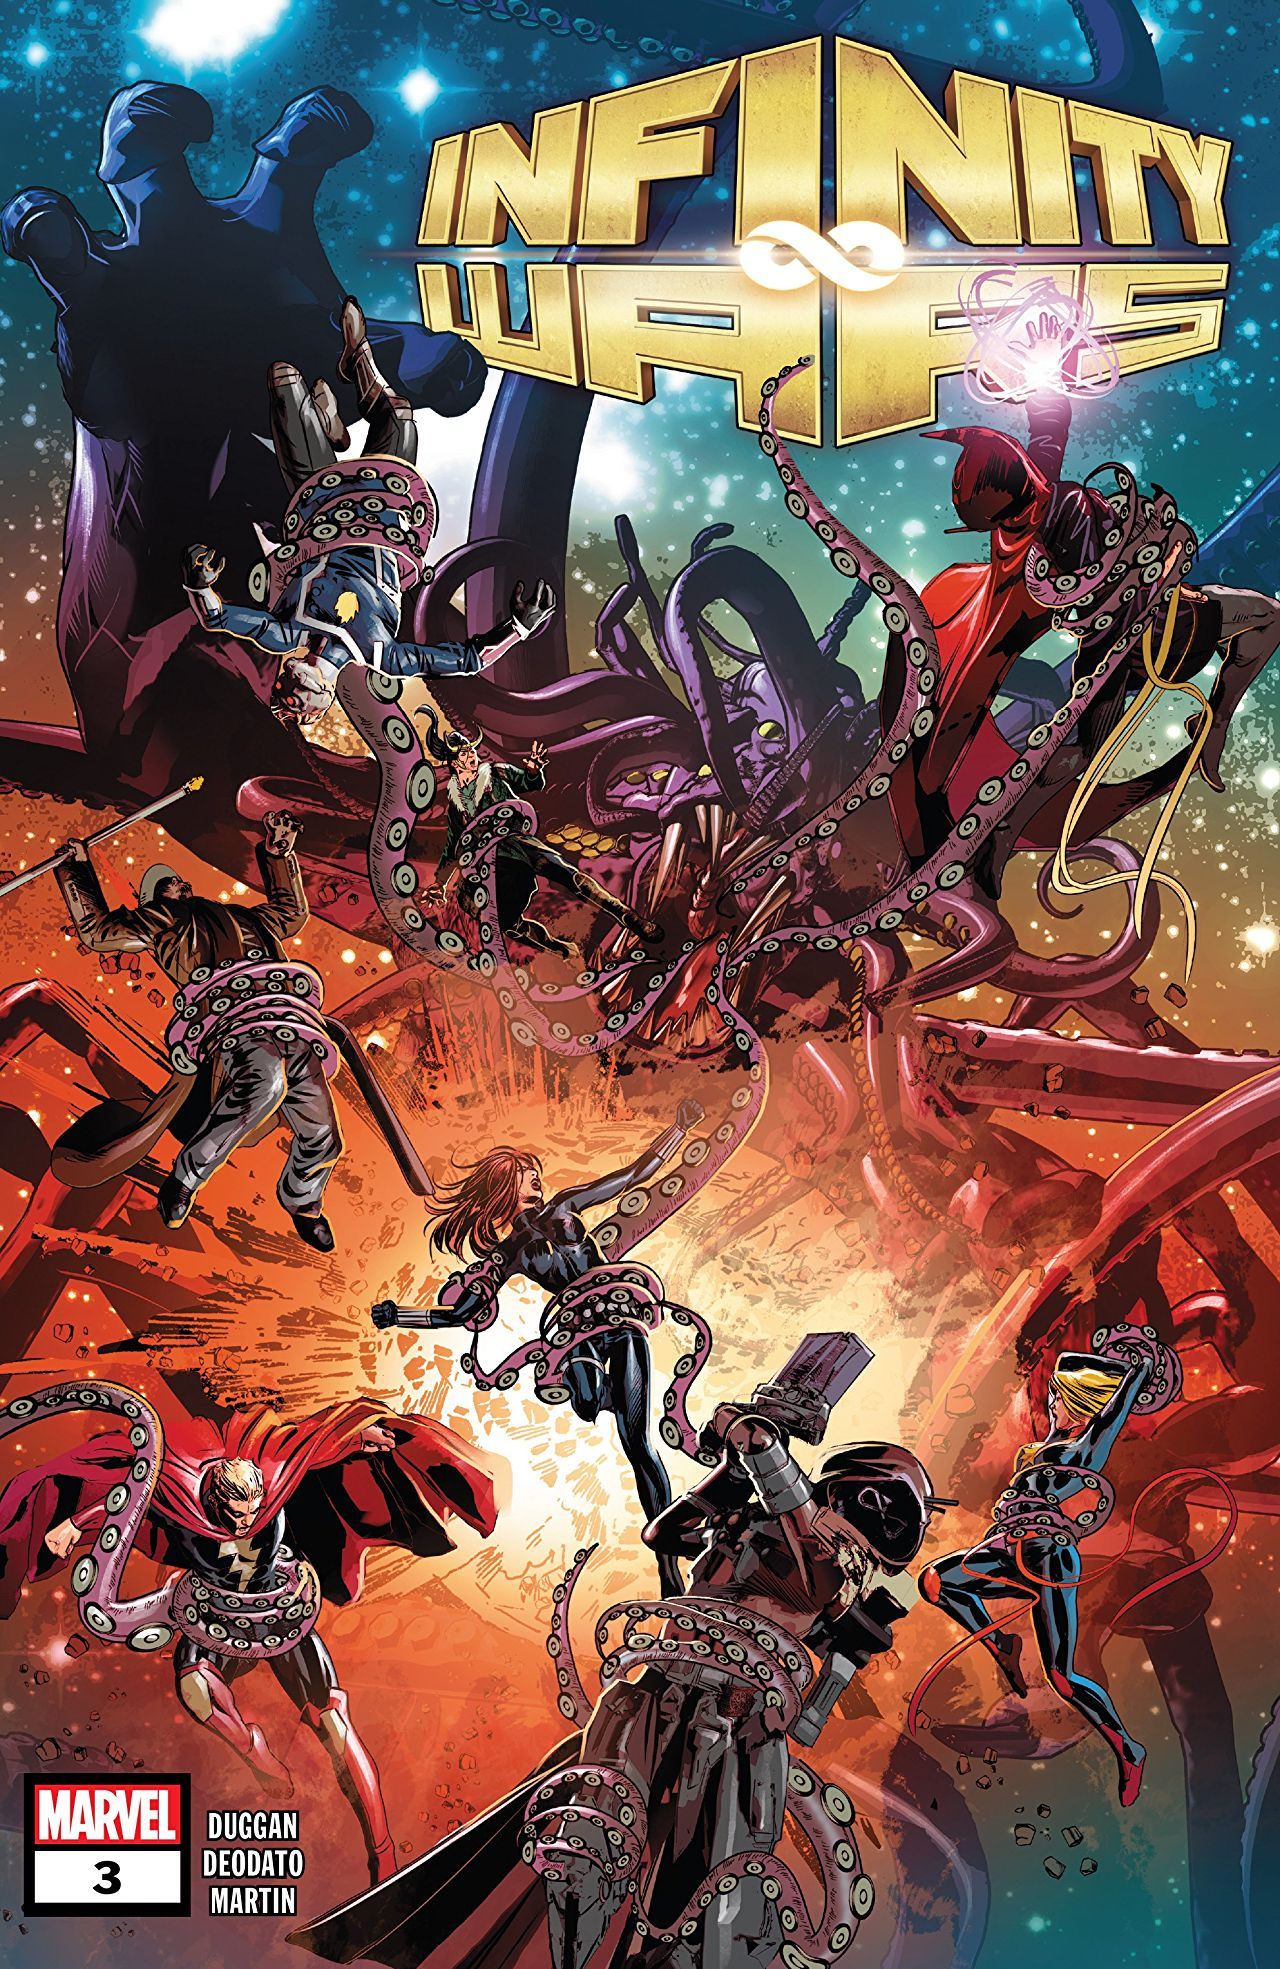 Infinity Wars #3 review: Who has control?